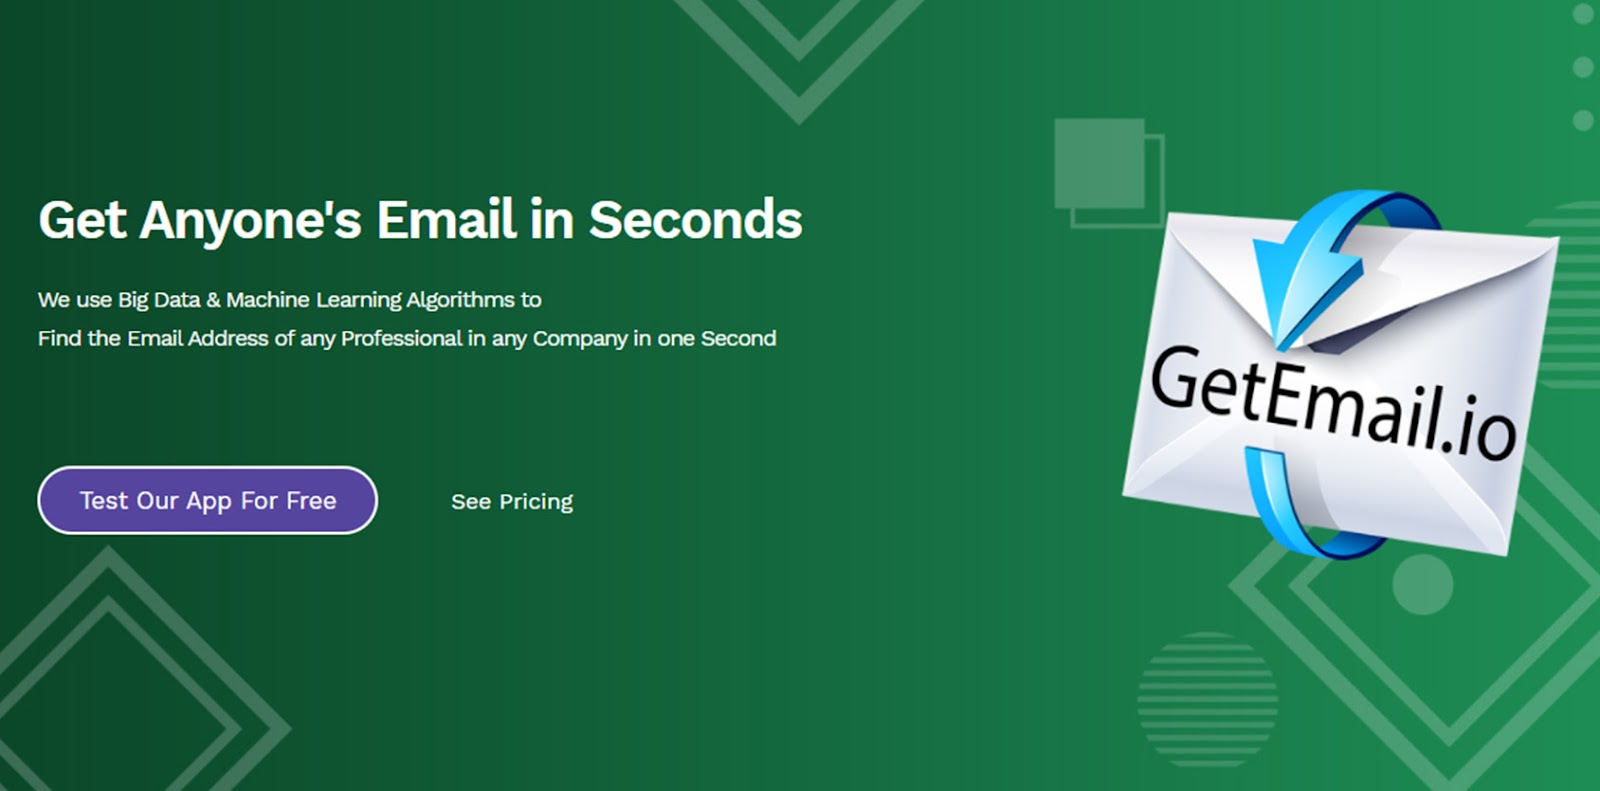 How to look up Anyone's Email Address? – GetEmail.io